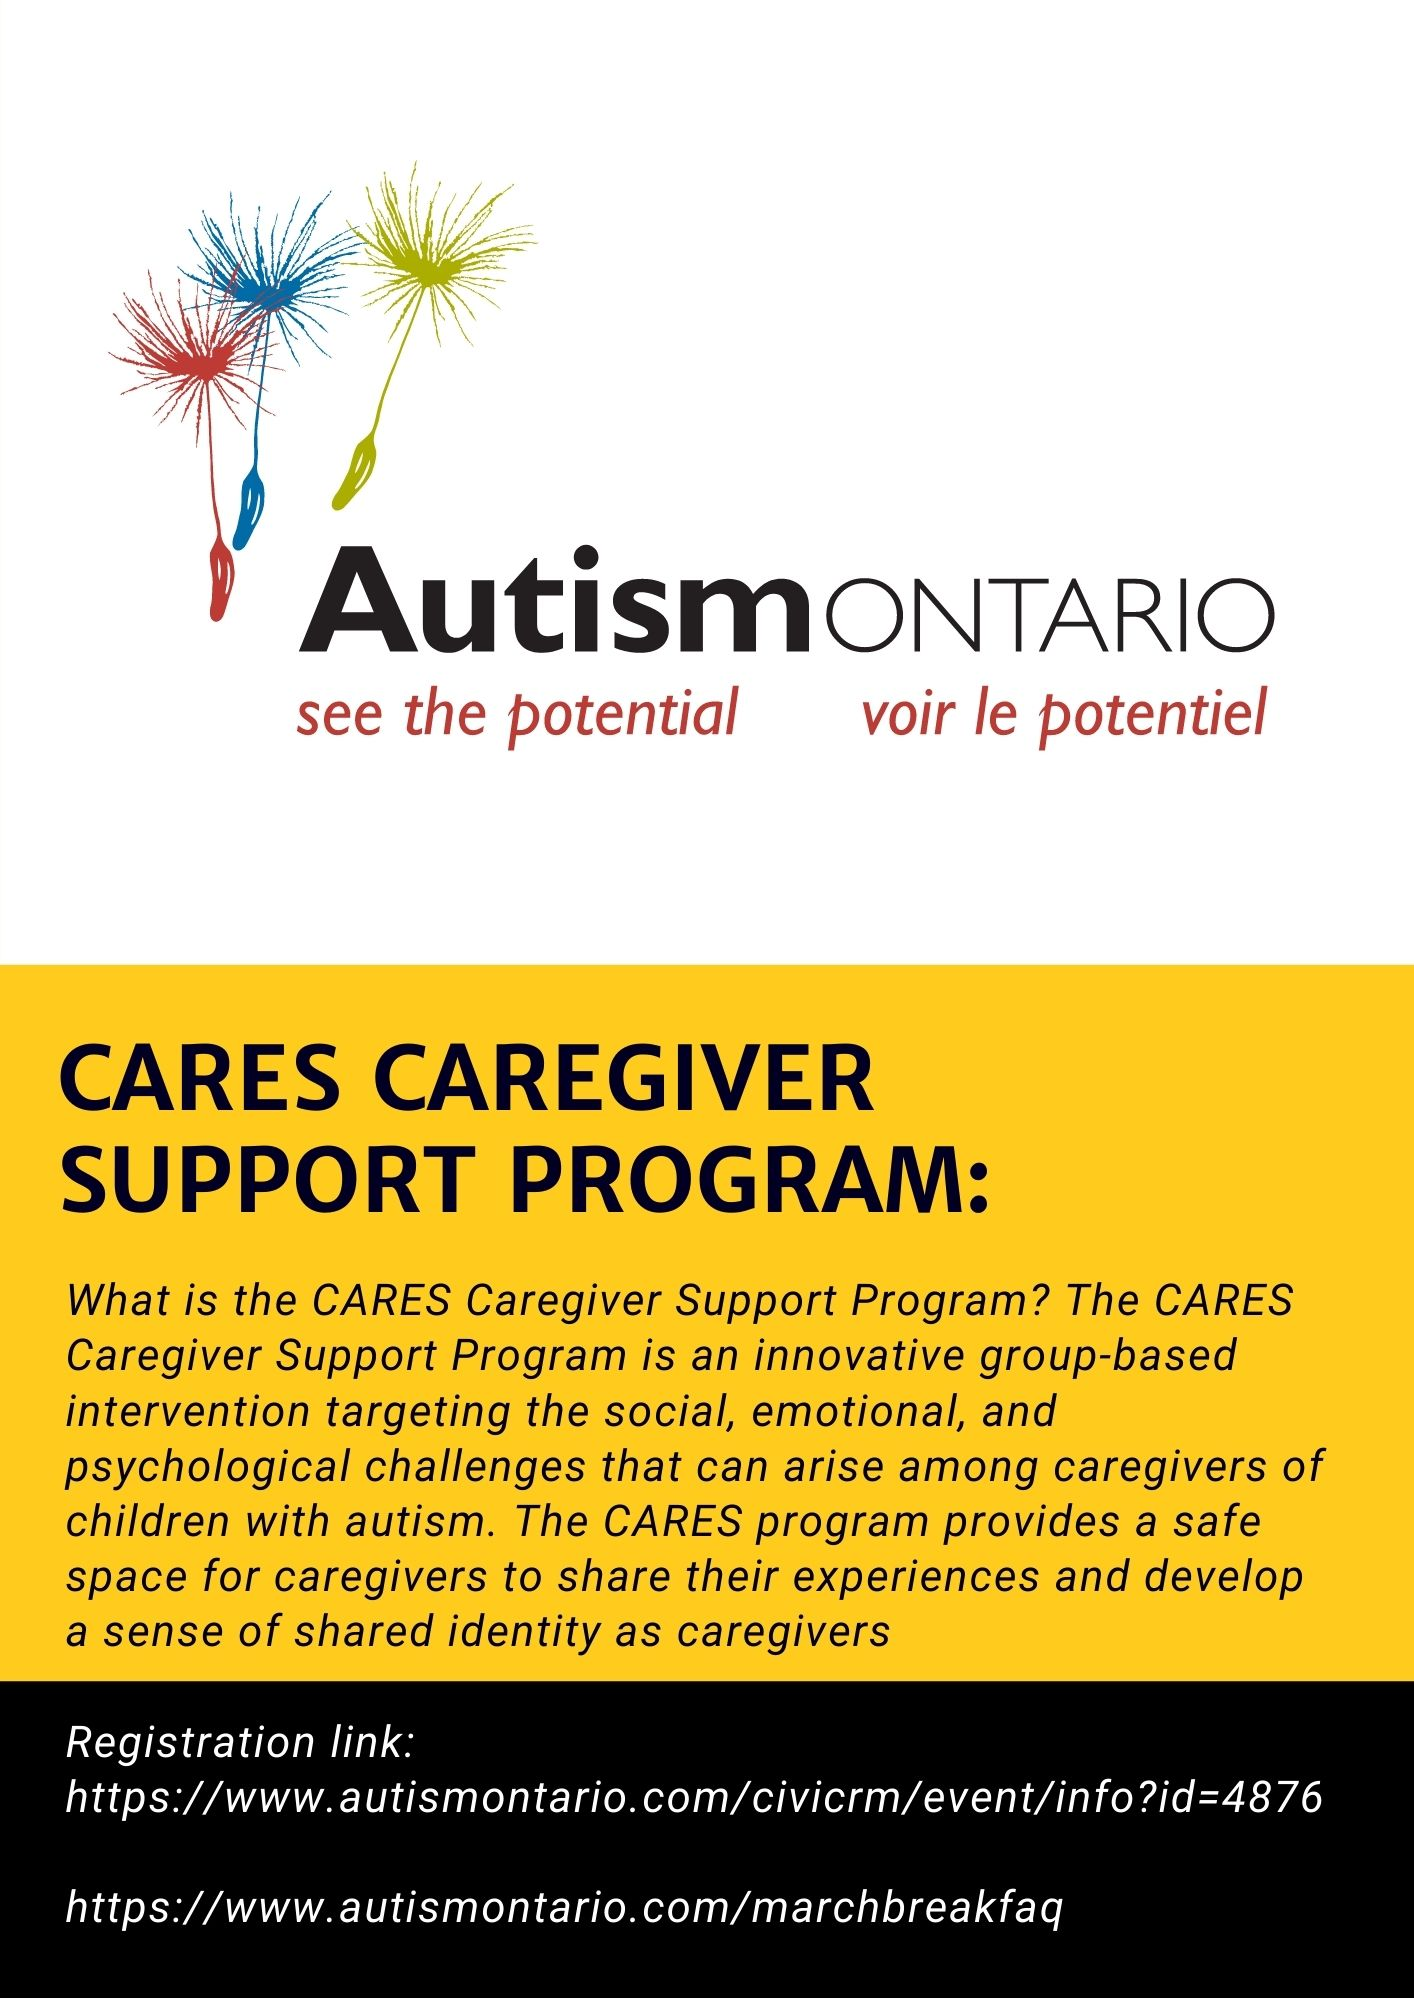 Autism Ontario Cares Caregiver Support Program Flyer